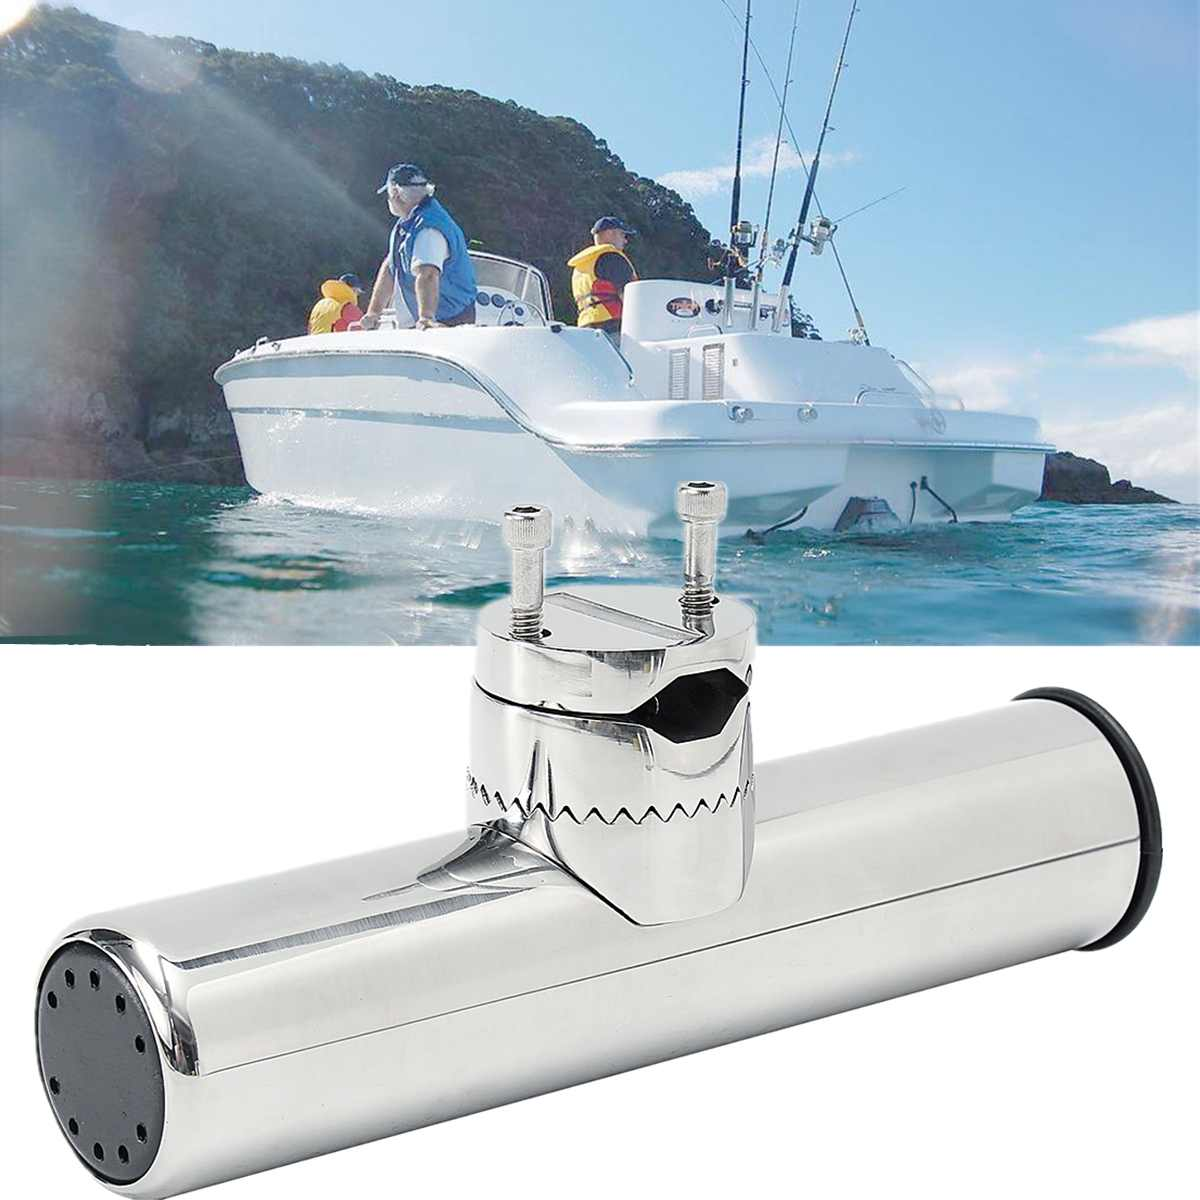 Adjustable 360 Angle Marine Boat Clamp Fishing Rod Holder For 26-32mm Rails 316 Stainless Steel Mount Length 230mm Diameter 55mm